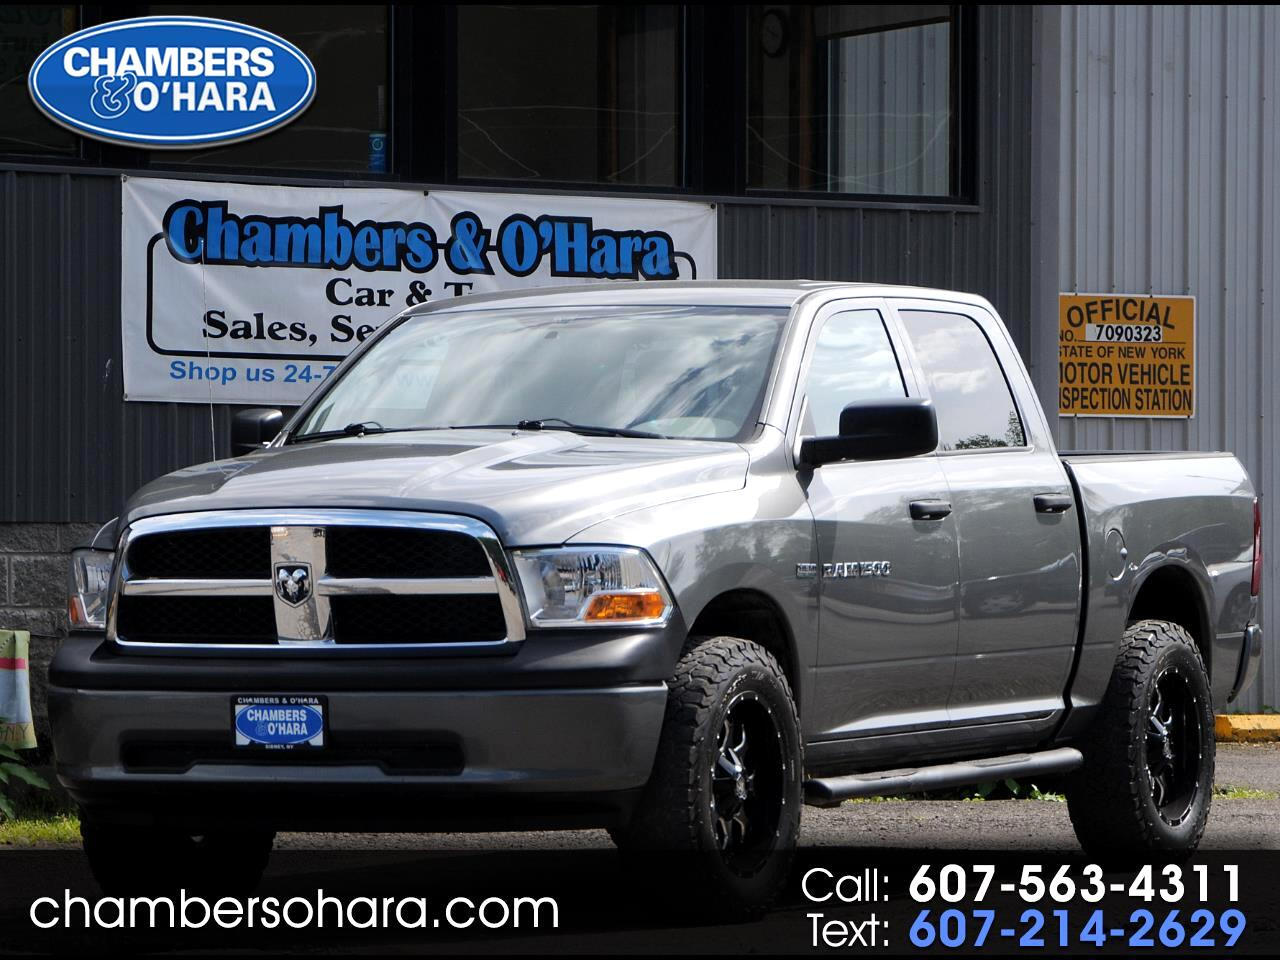 used 2011 ram 1500 for sale in sidney ny 13838 chambers o hara chambers o hara